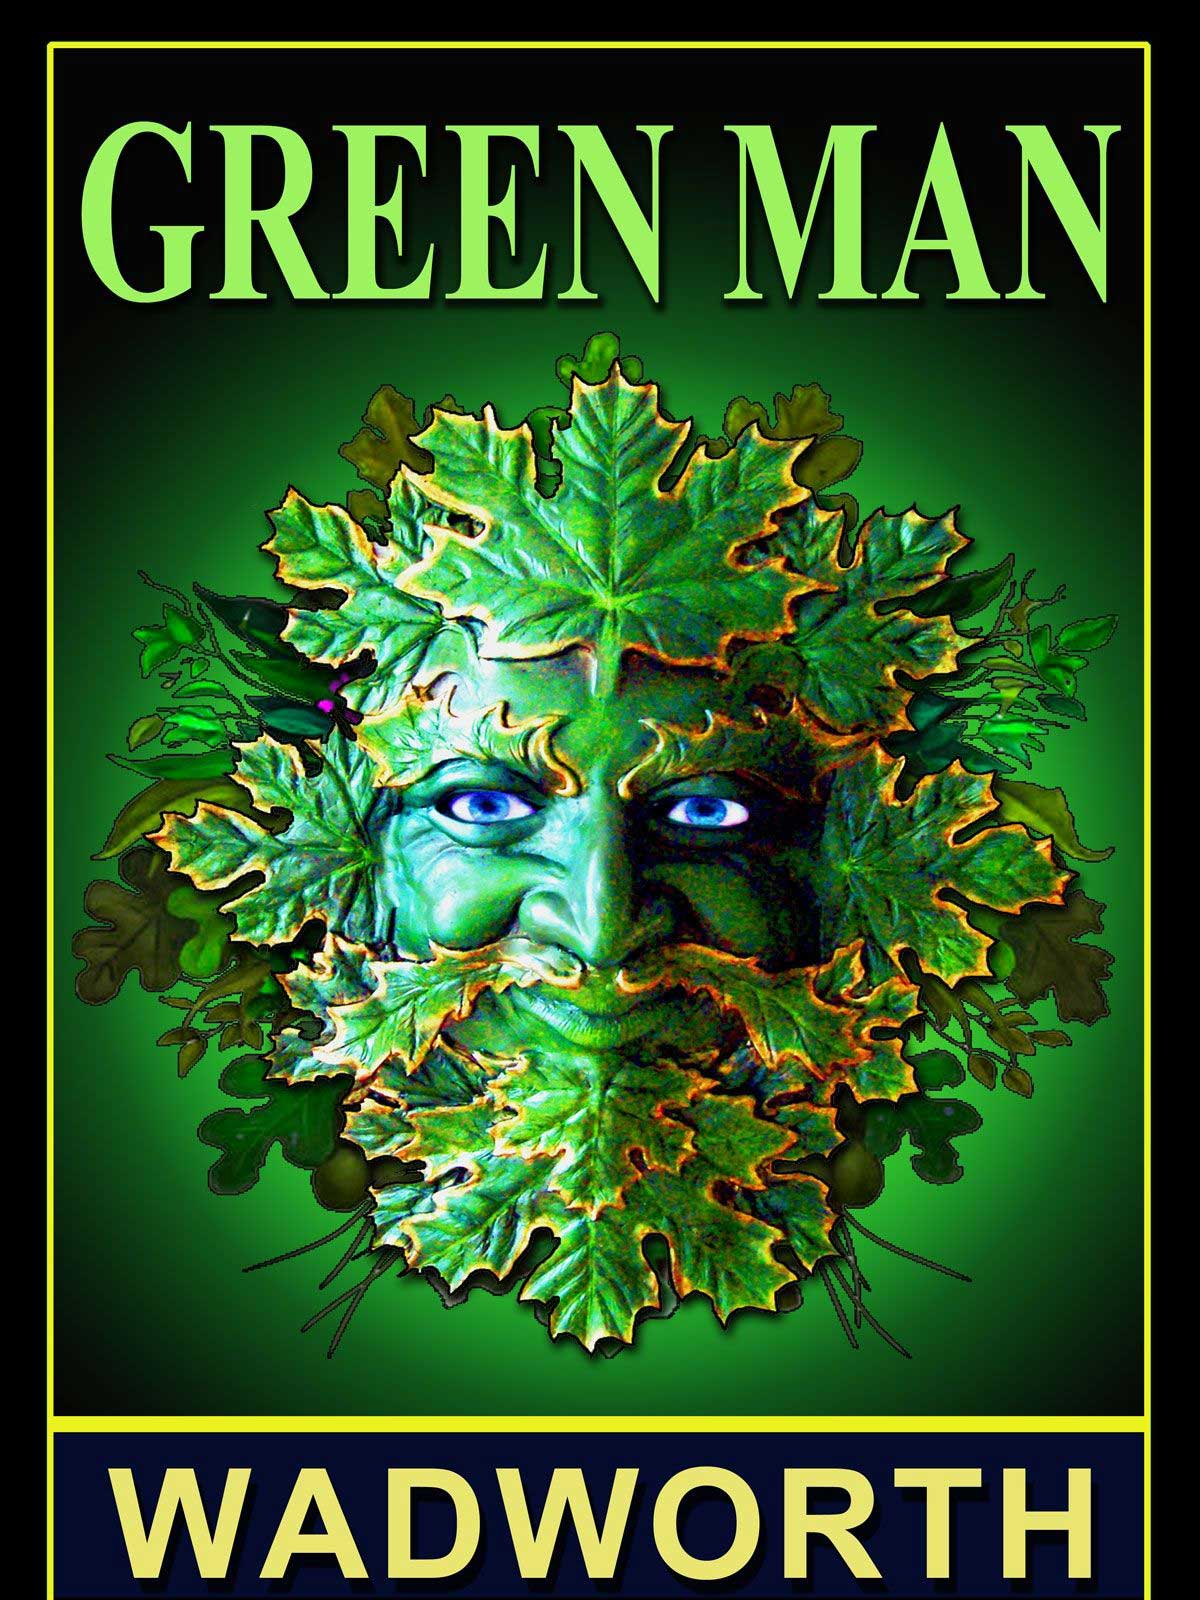 It's Midsummer's Day - so look out for the Green Man across Dorset